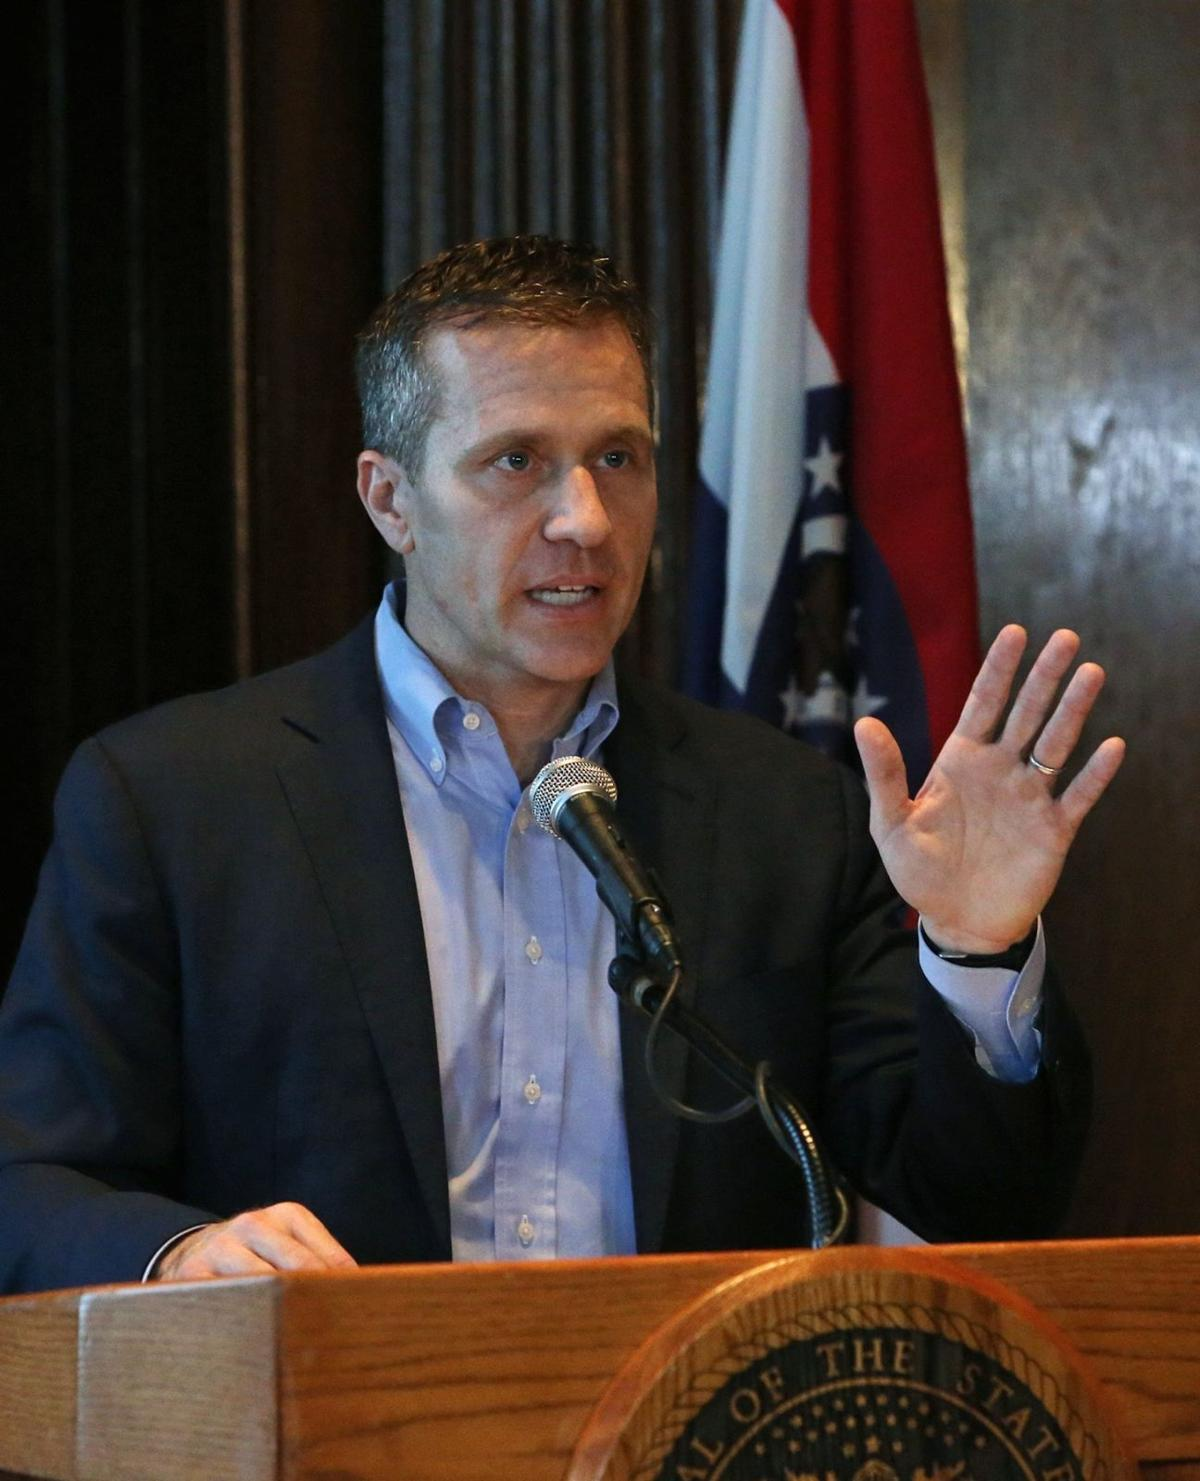 Gov. Greitens calls this a witch hunt